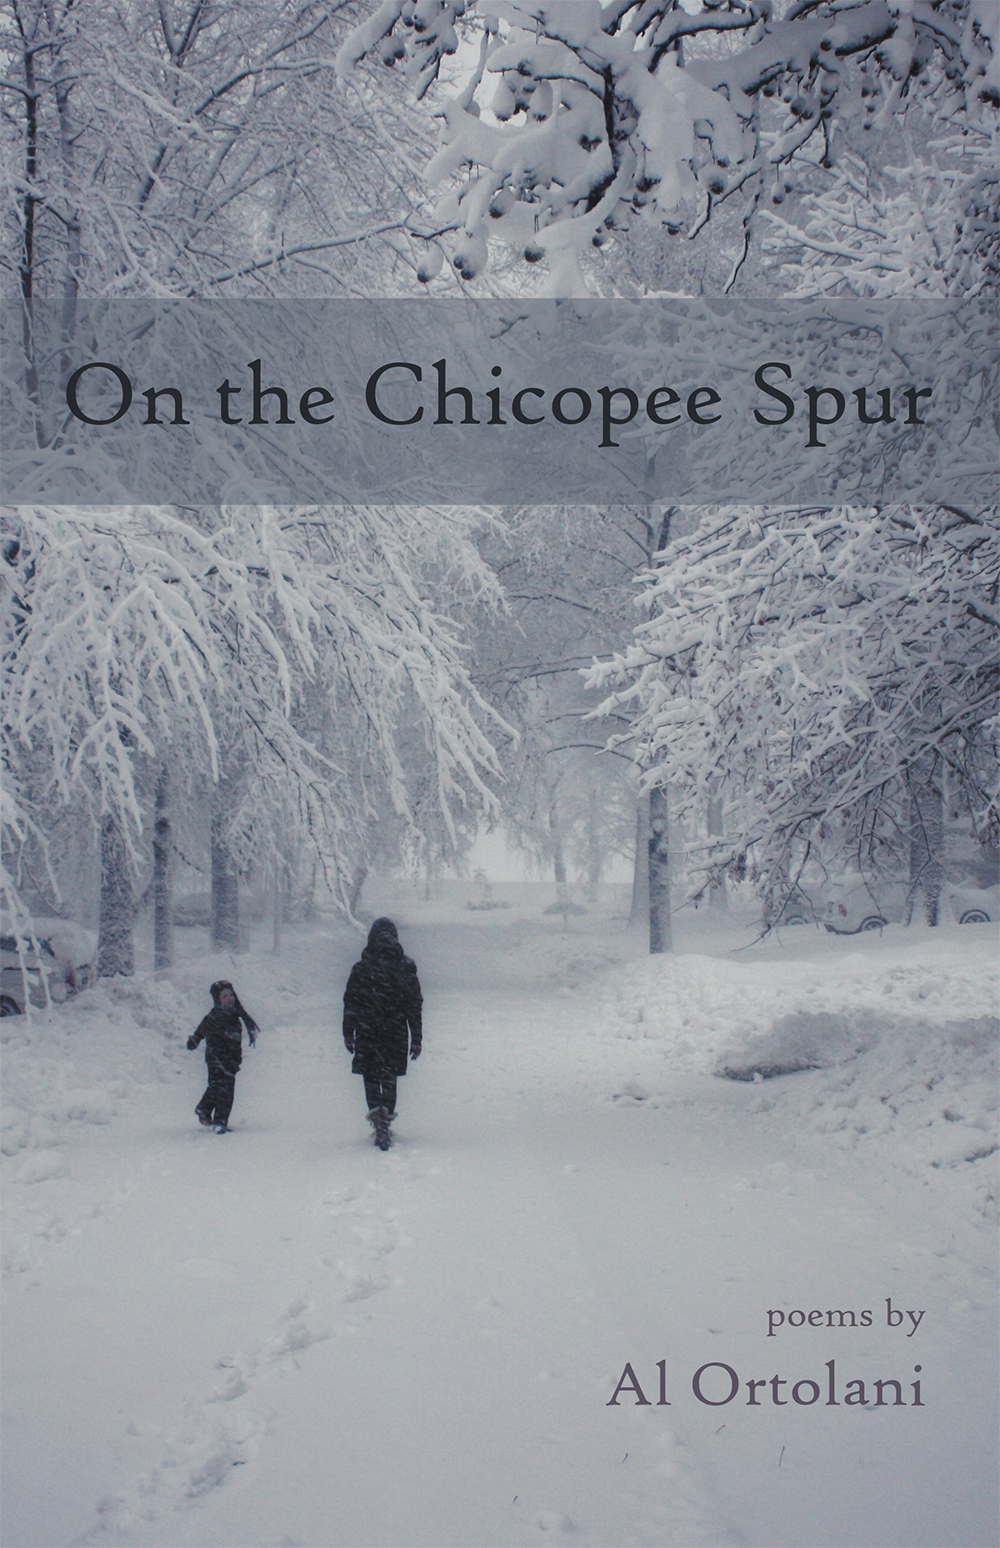 On the Chicopee Spur